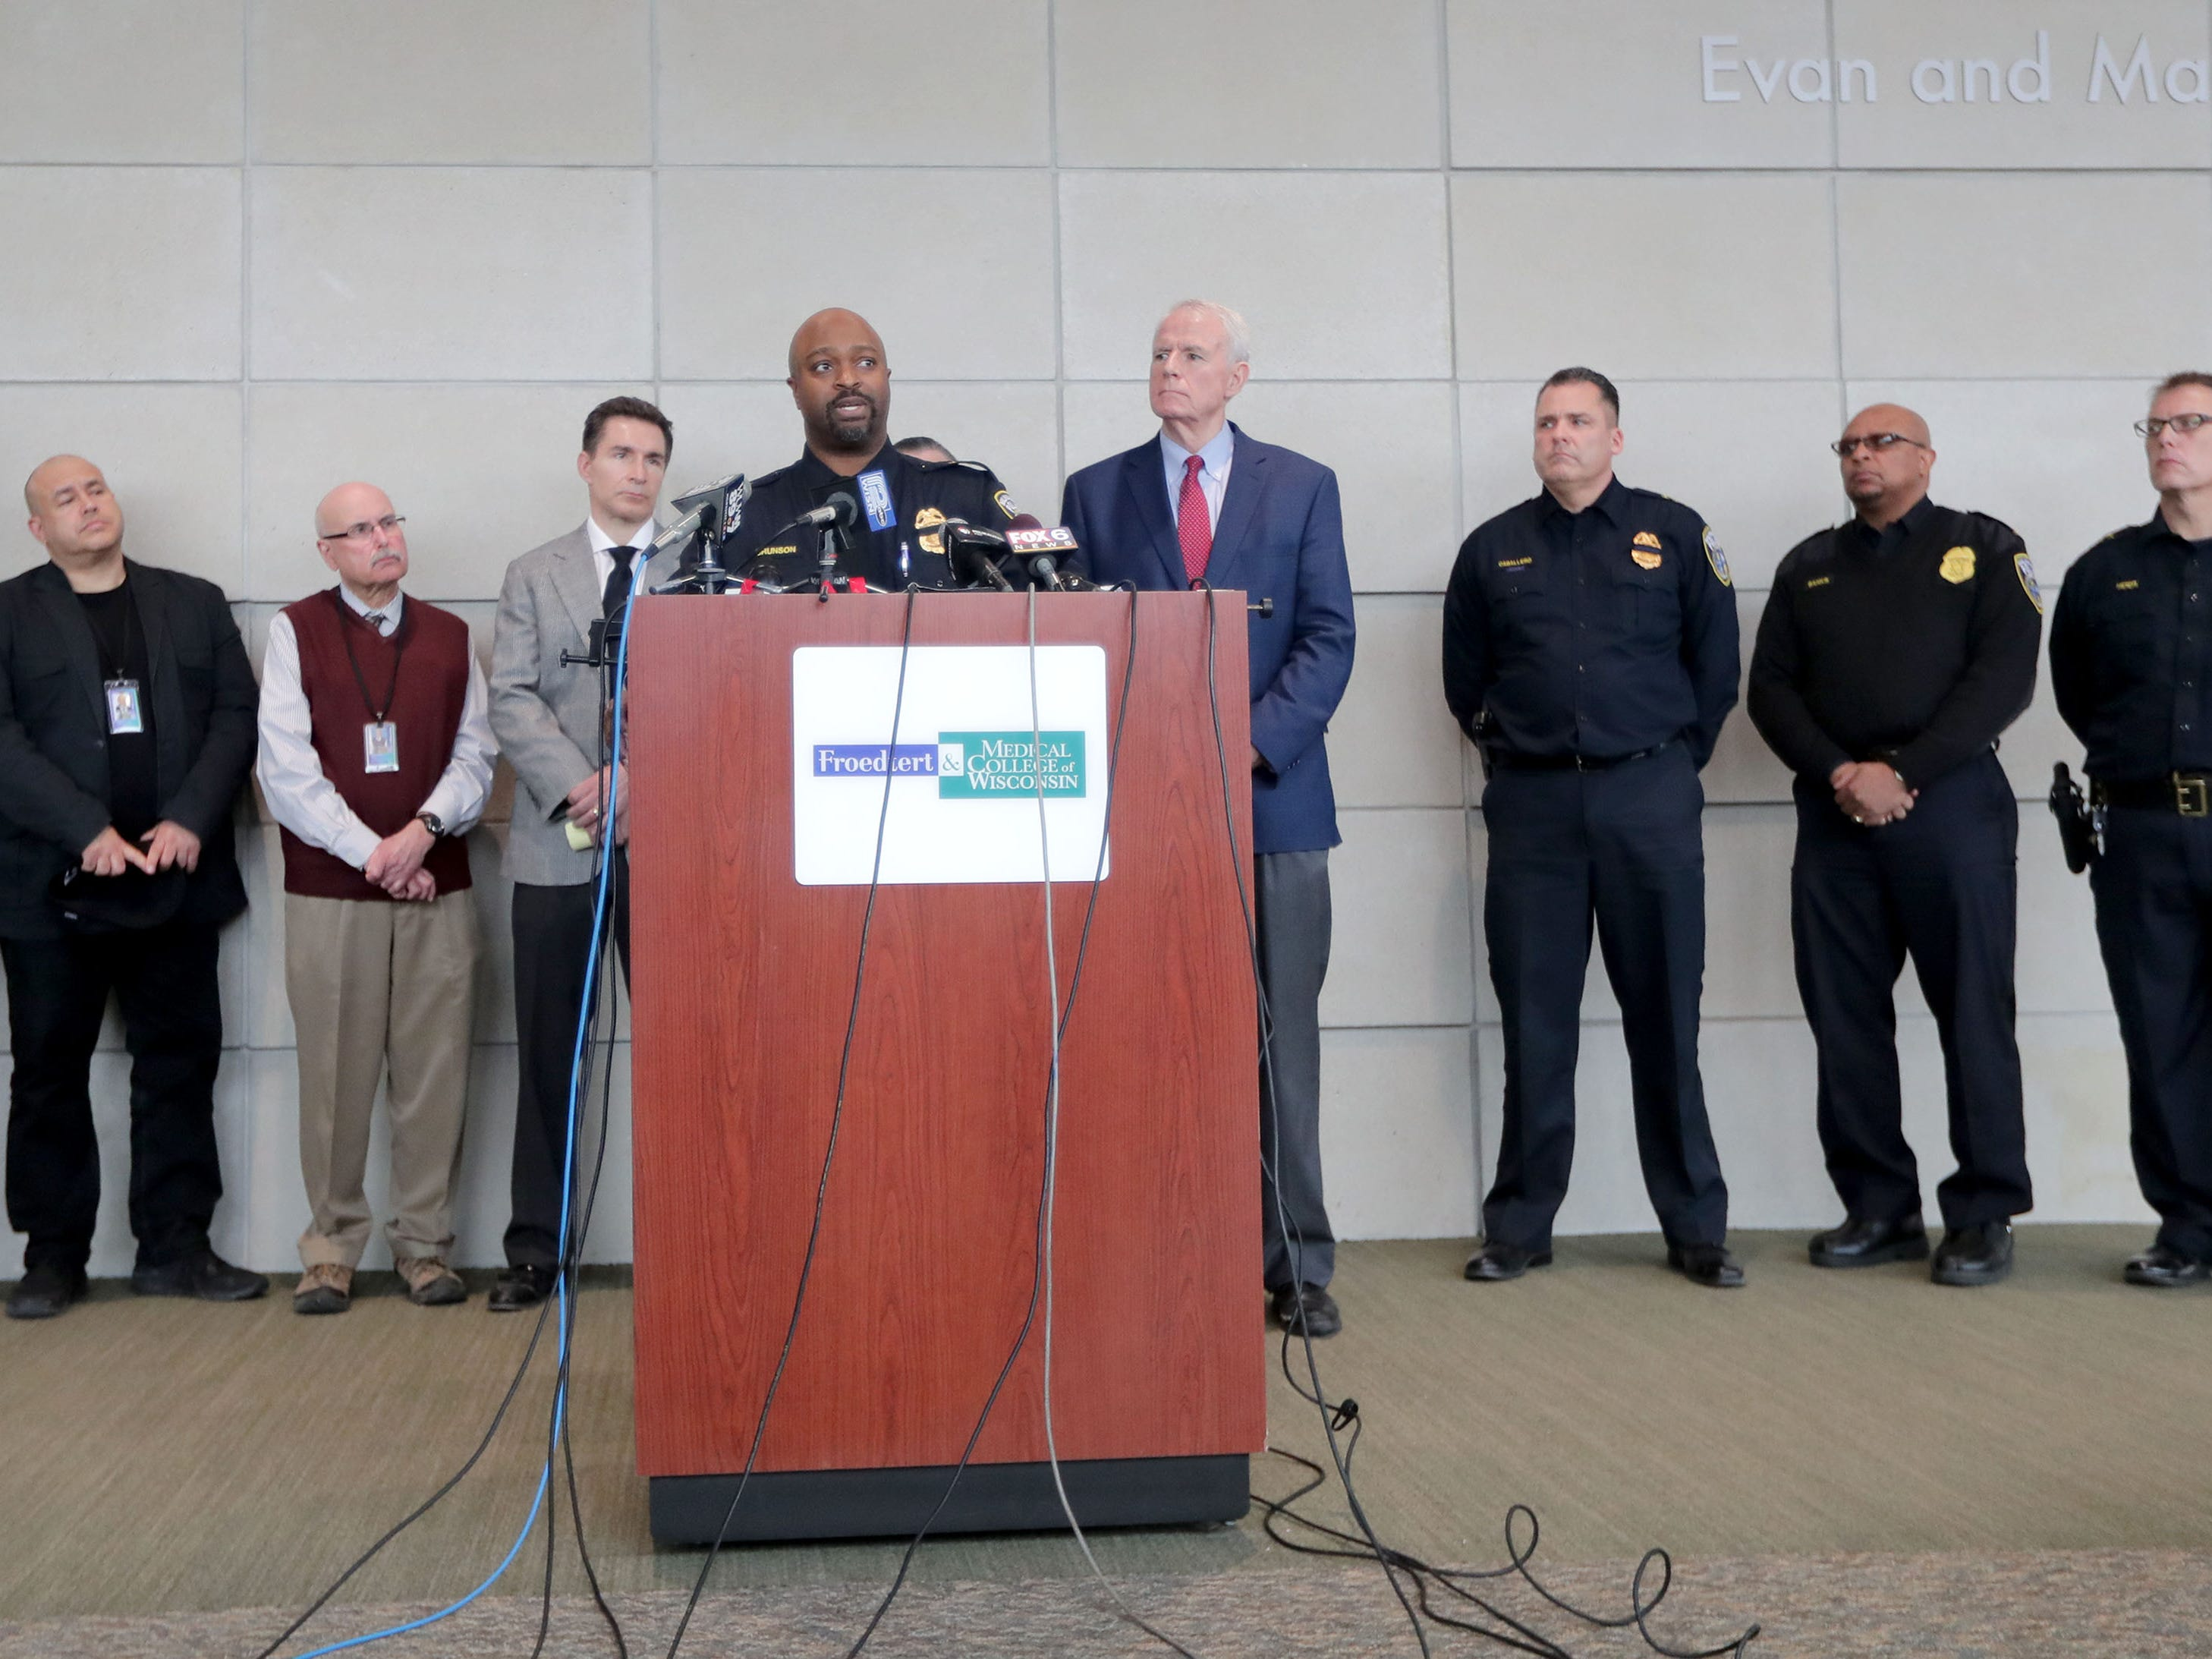 Assistant Milwaukee Police Chief Michael Brunson Sr. speaks surrounded by law enforcement officials during a news conference at Froedtert Hospital in Milwaukee on Wednesday about a Milwaukee police officer who was shot and killed in the line of duty Wednesday morning on Milwaukee's south side.